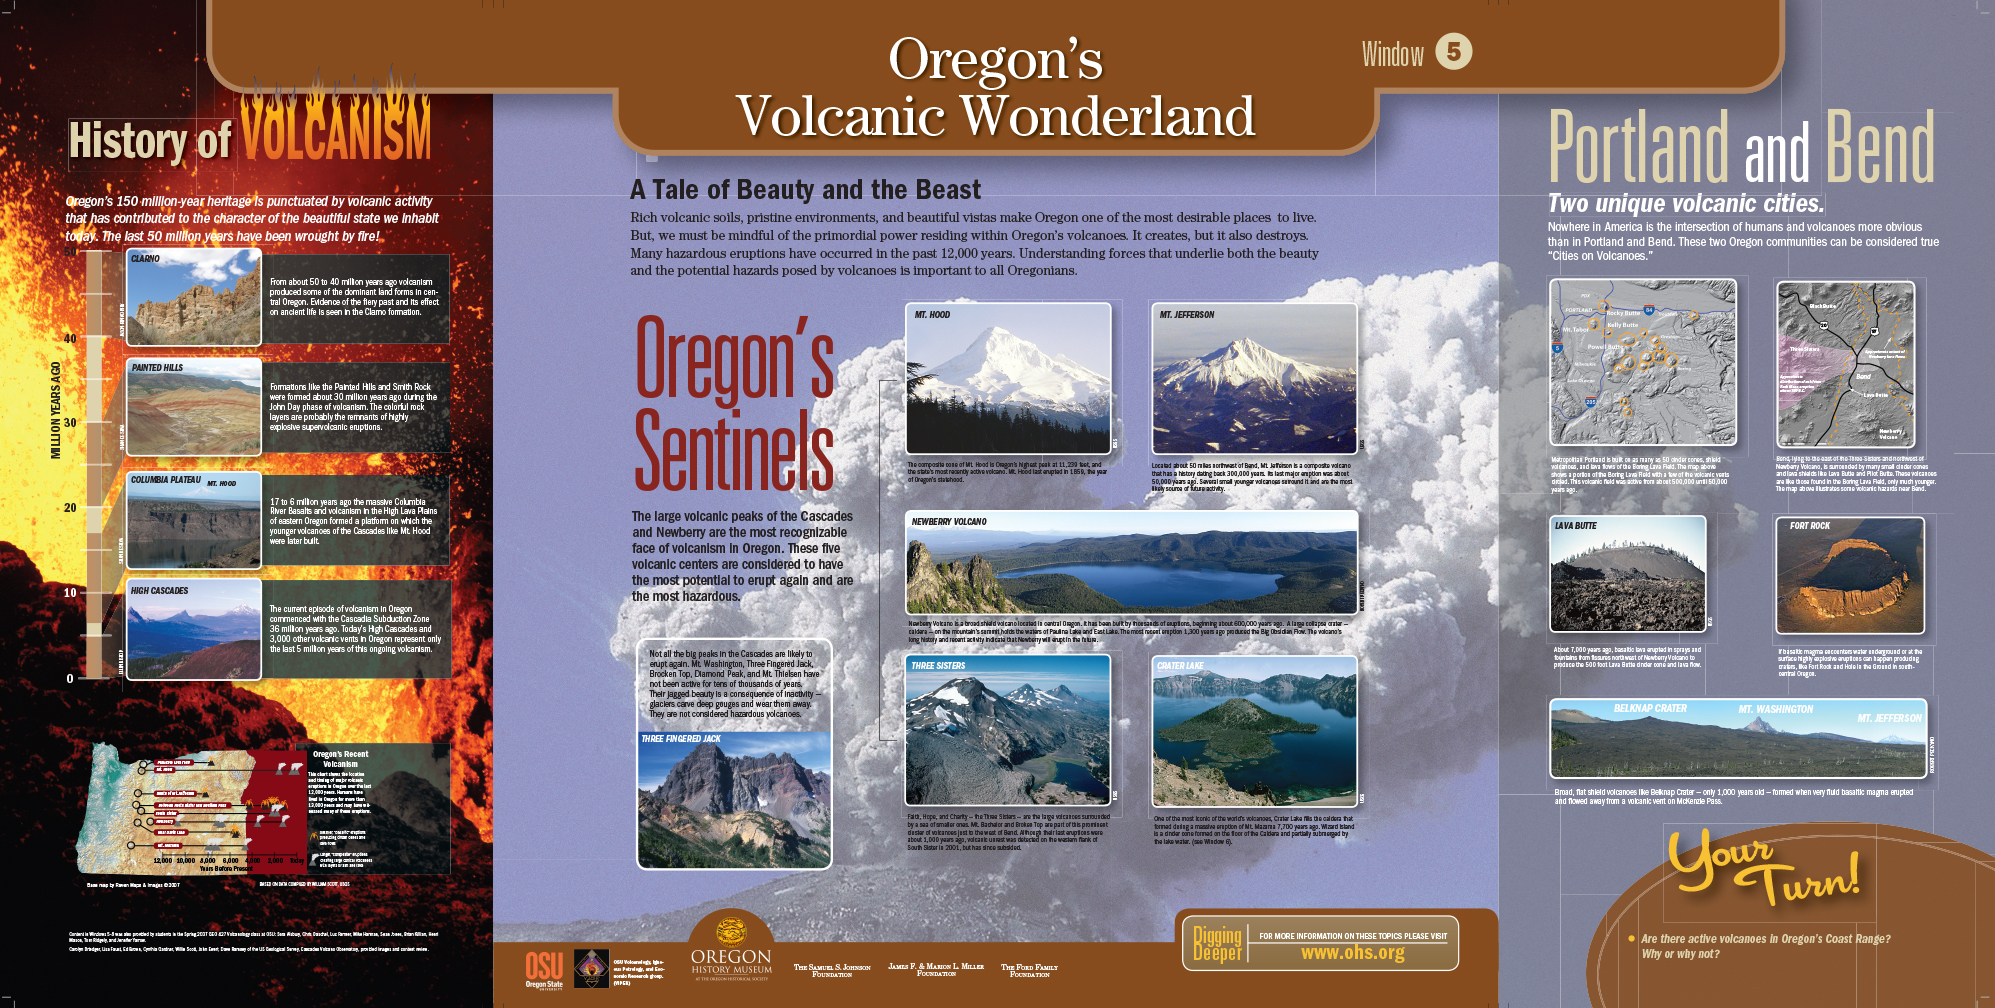 what makes a volcano hazardous Why are some volcanoes more hazardous than others there are several reasons that influence volcanic hazards, these include the viscosity of the magma, proximity to population centres, materials that are ejected from the volcano, the magnitude of the eruption and the plate margin that the volcano rests upon.